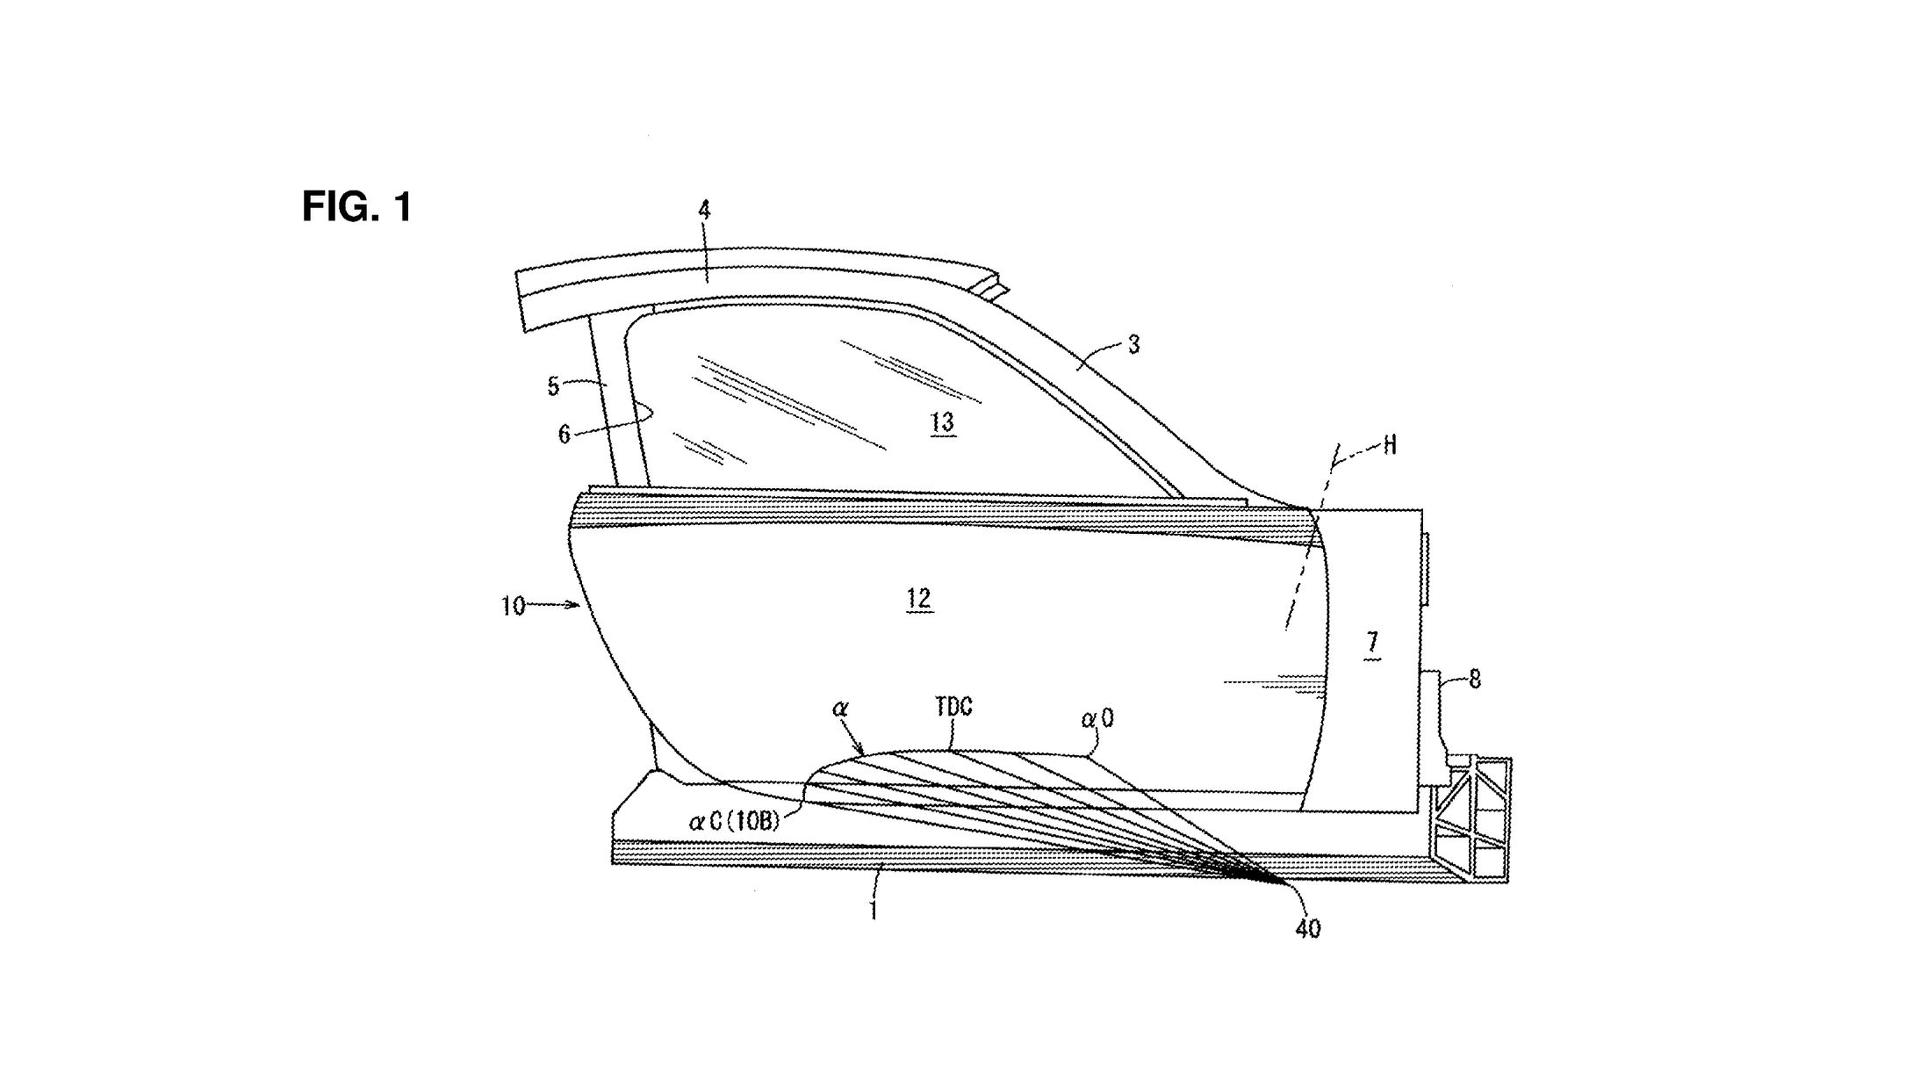 hight resolution of  mazda door support structure of automotive vehicle rumored rx 9 rotary sports car